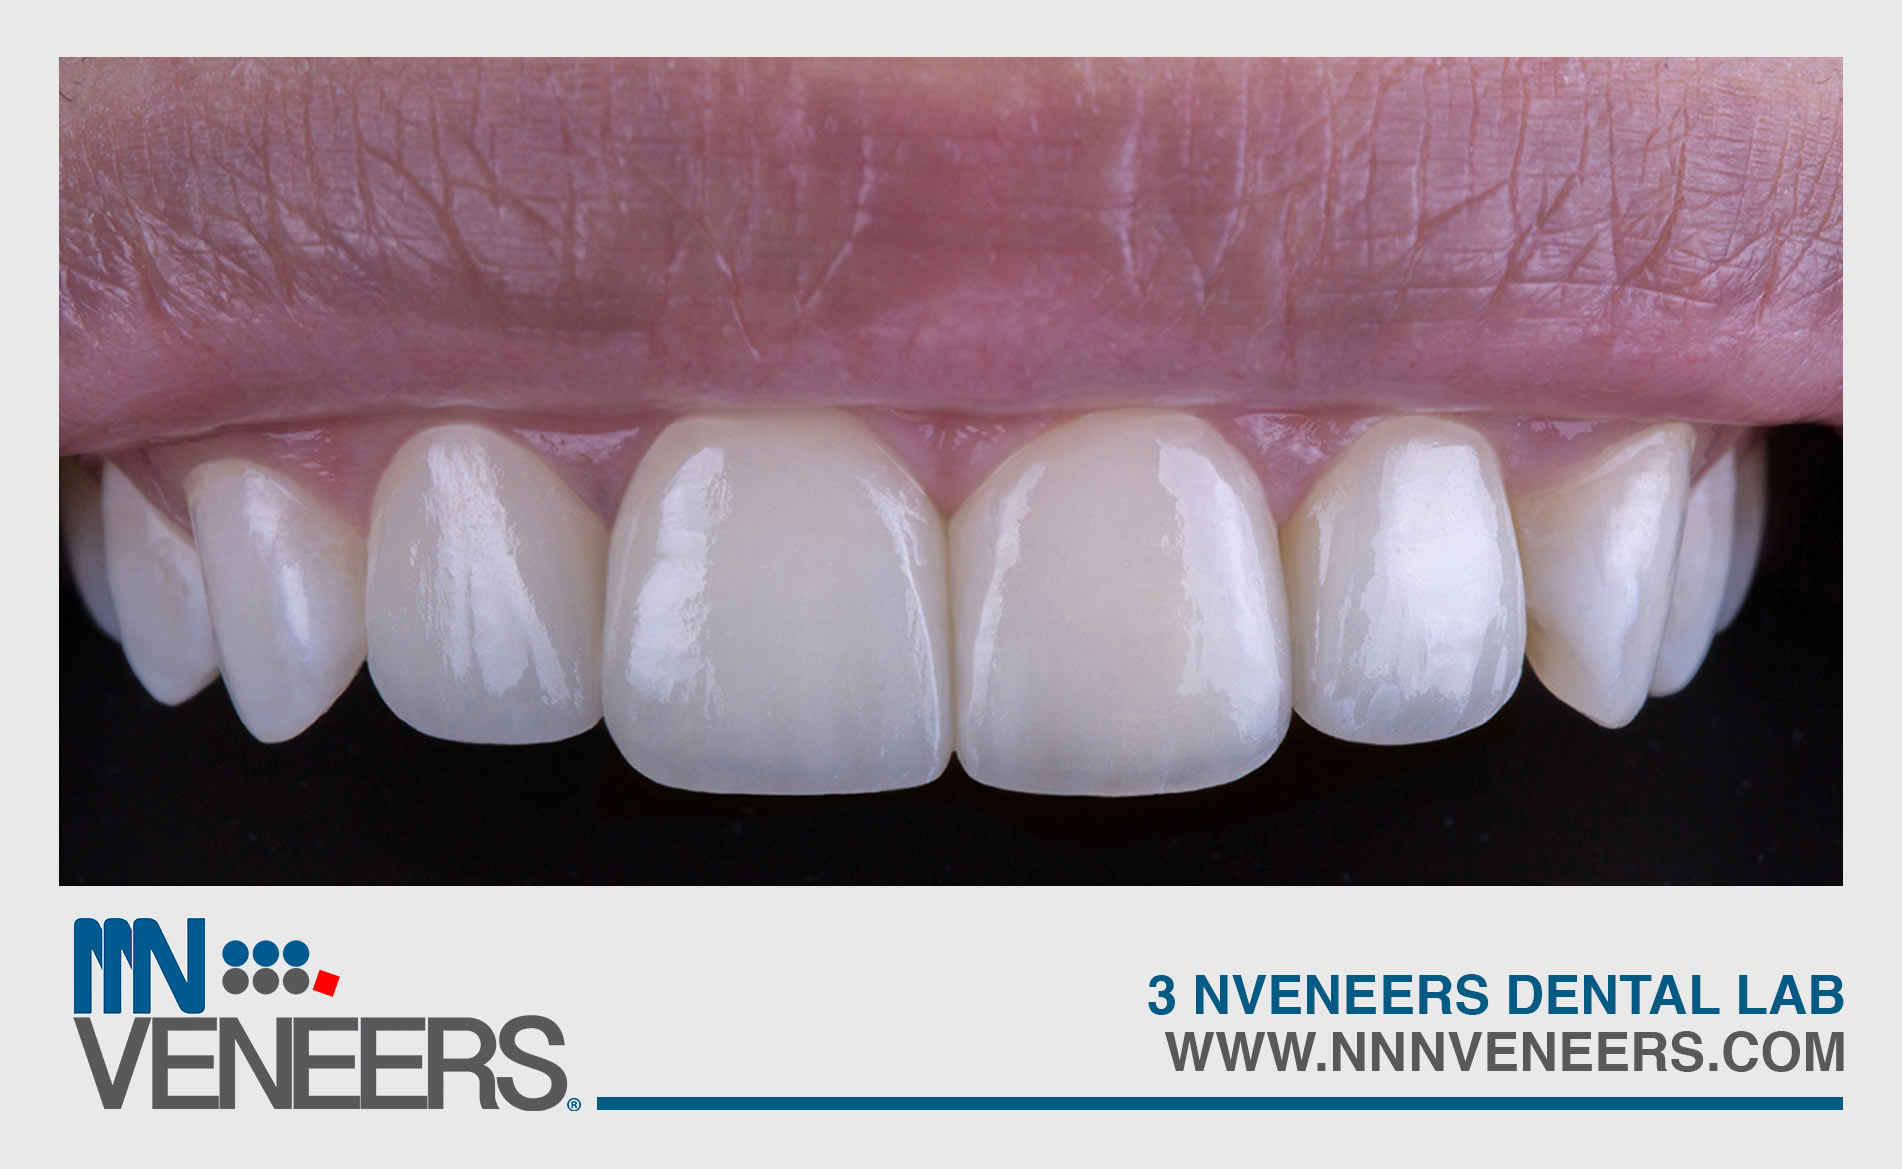 NNNVeneer Teeth Image Gallery Close Up 1 After